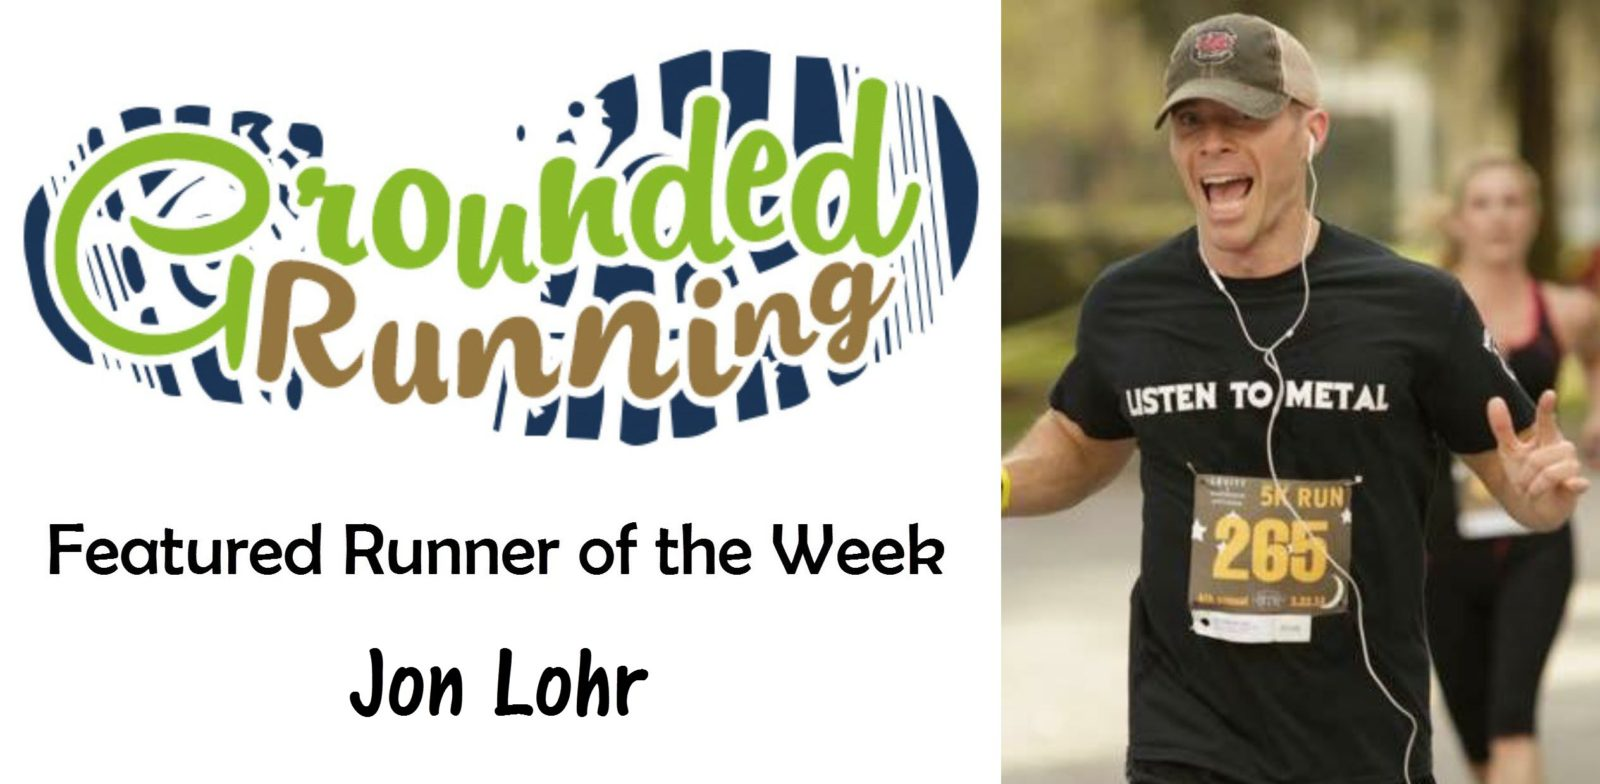 Jon Lohr - Featured Runner of the Week